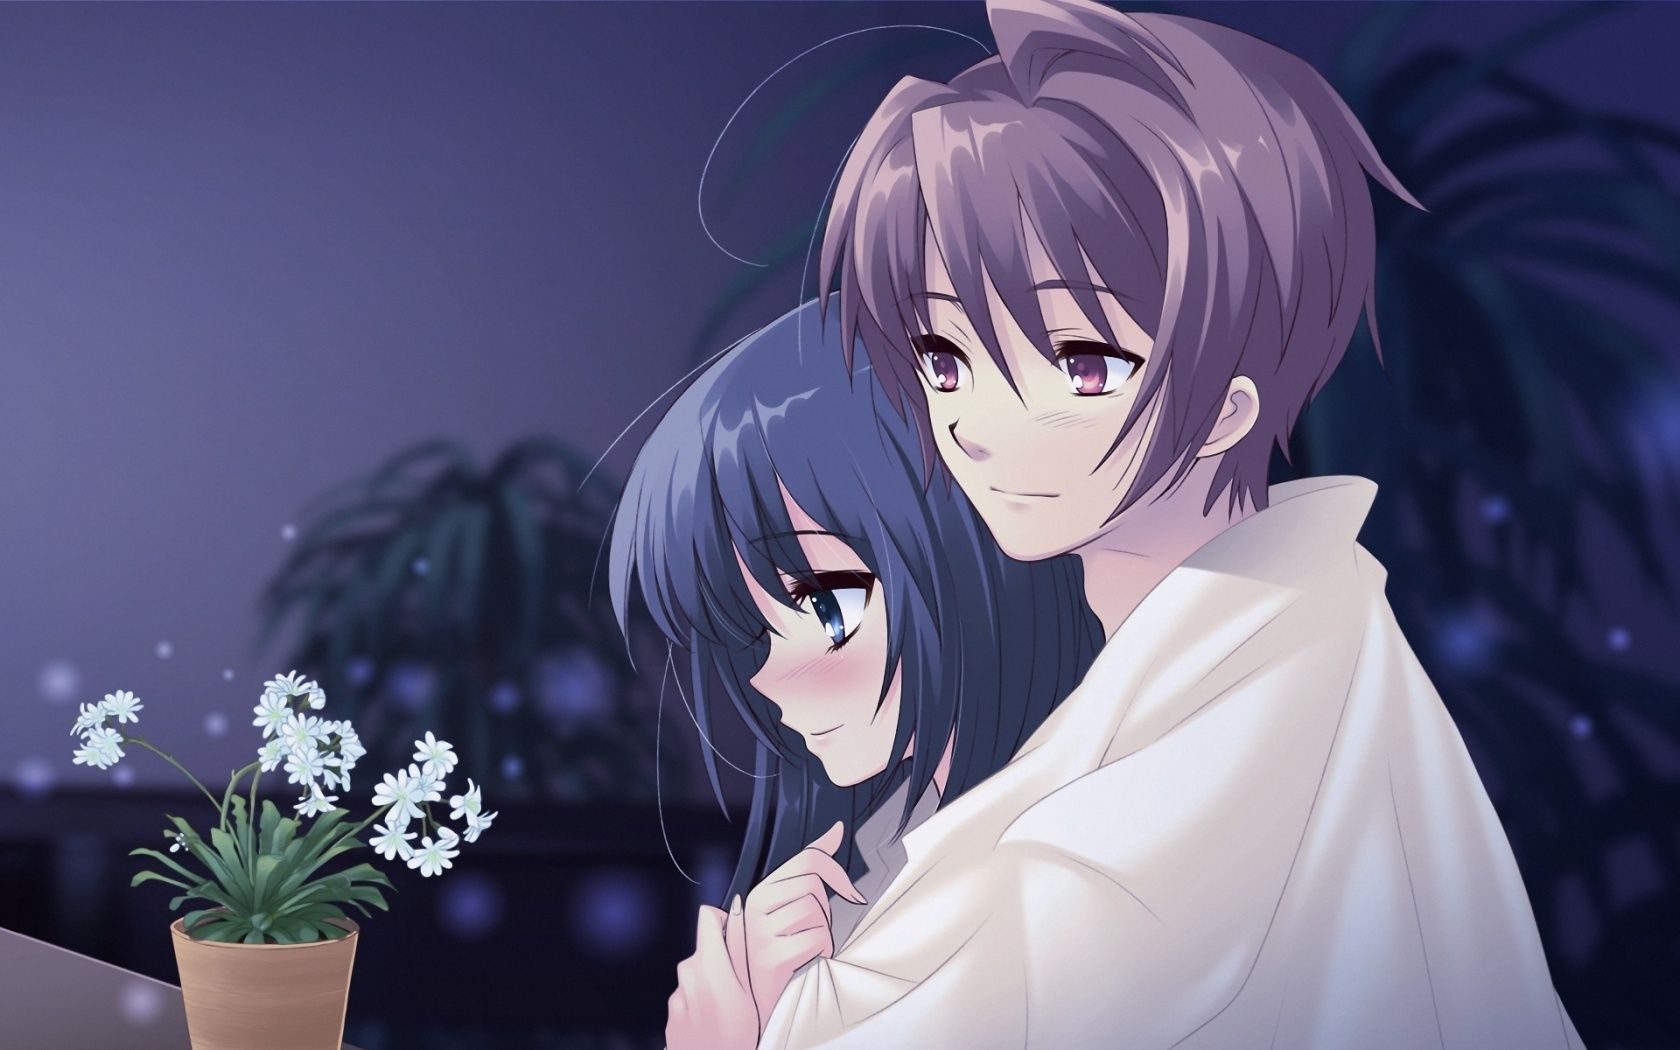 Sweet Anime Love Wallpaper Desktop : Anime Boy and Girl Love Anime Boy And Girl 1680x1050 Download close cool pins ...